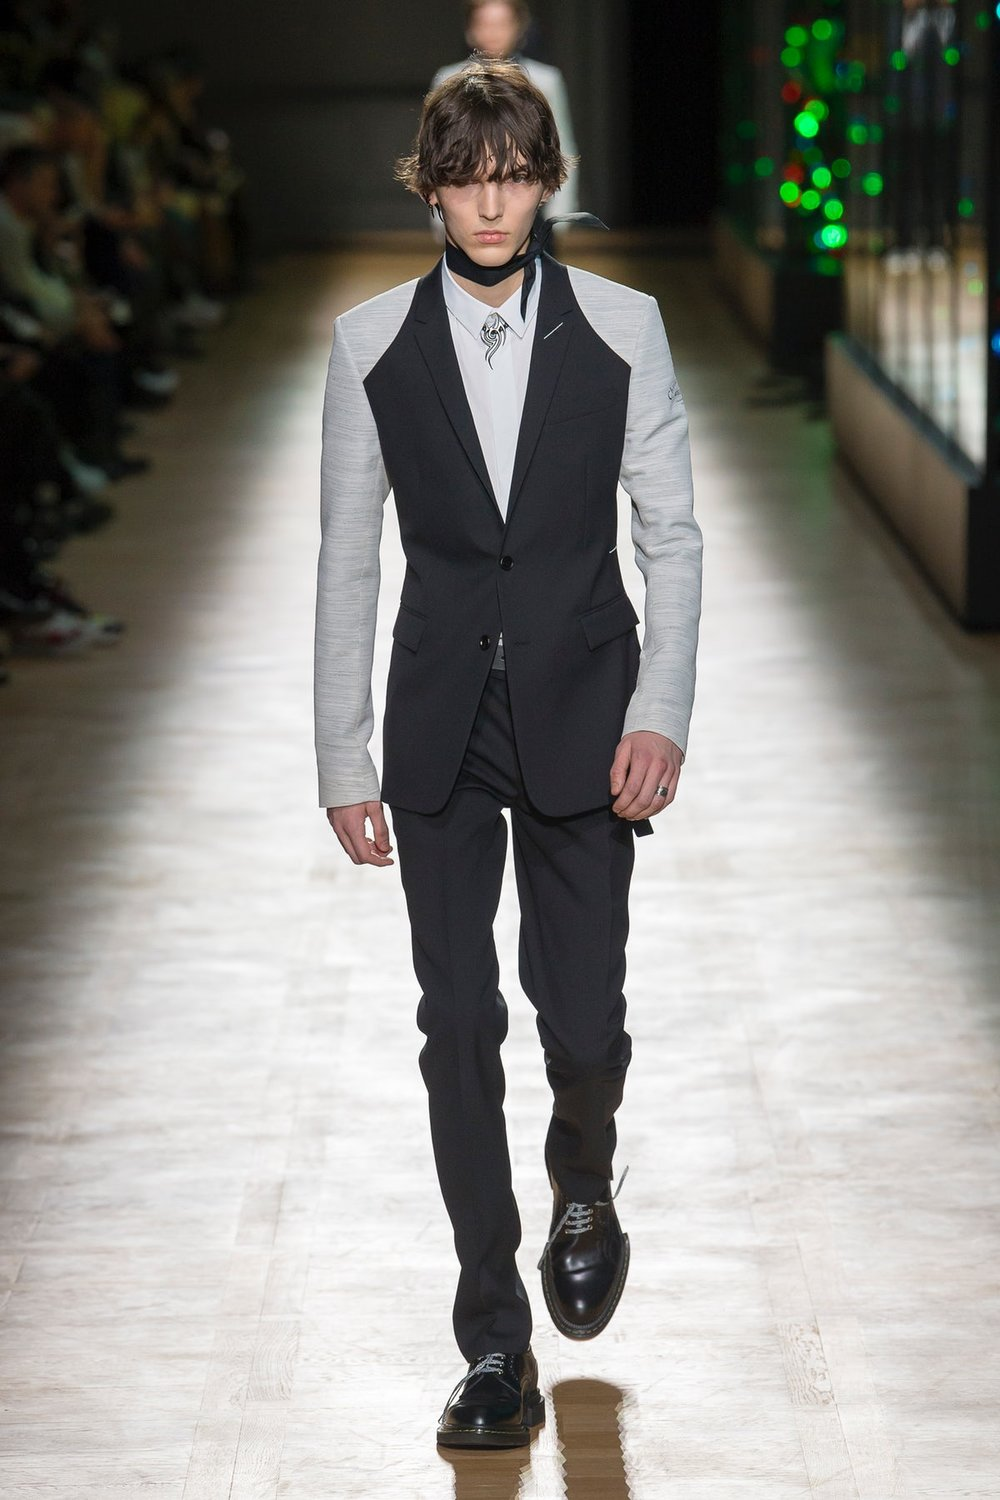 dior_homme_look_7_menswear_autumn_2018.jpeg